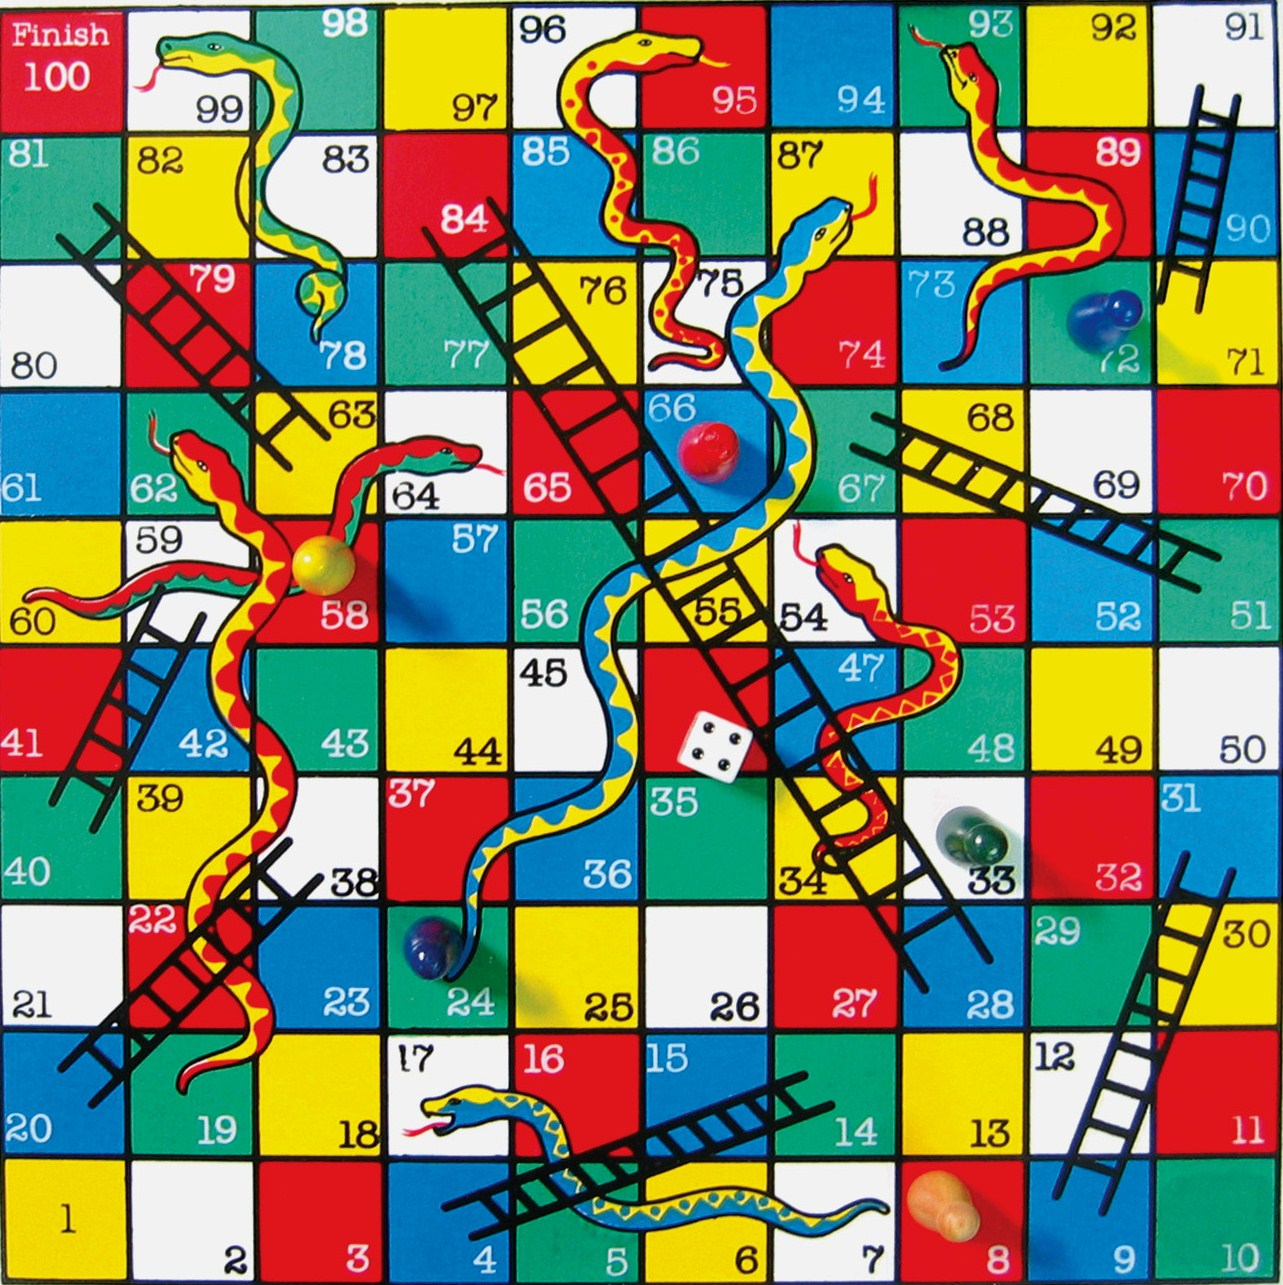 Snakes And Ladders Game Project In C Code With C